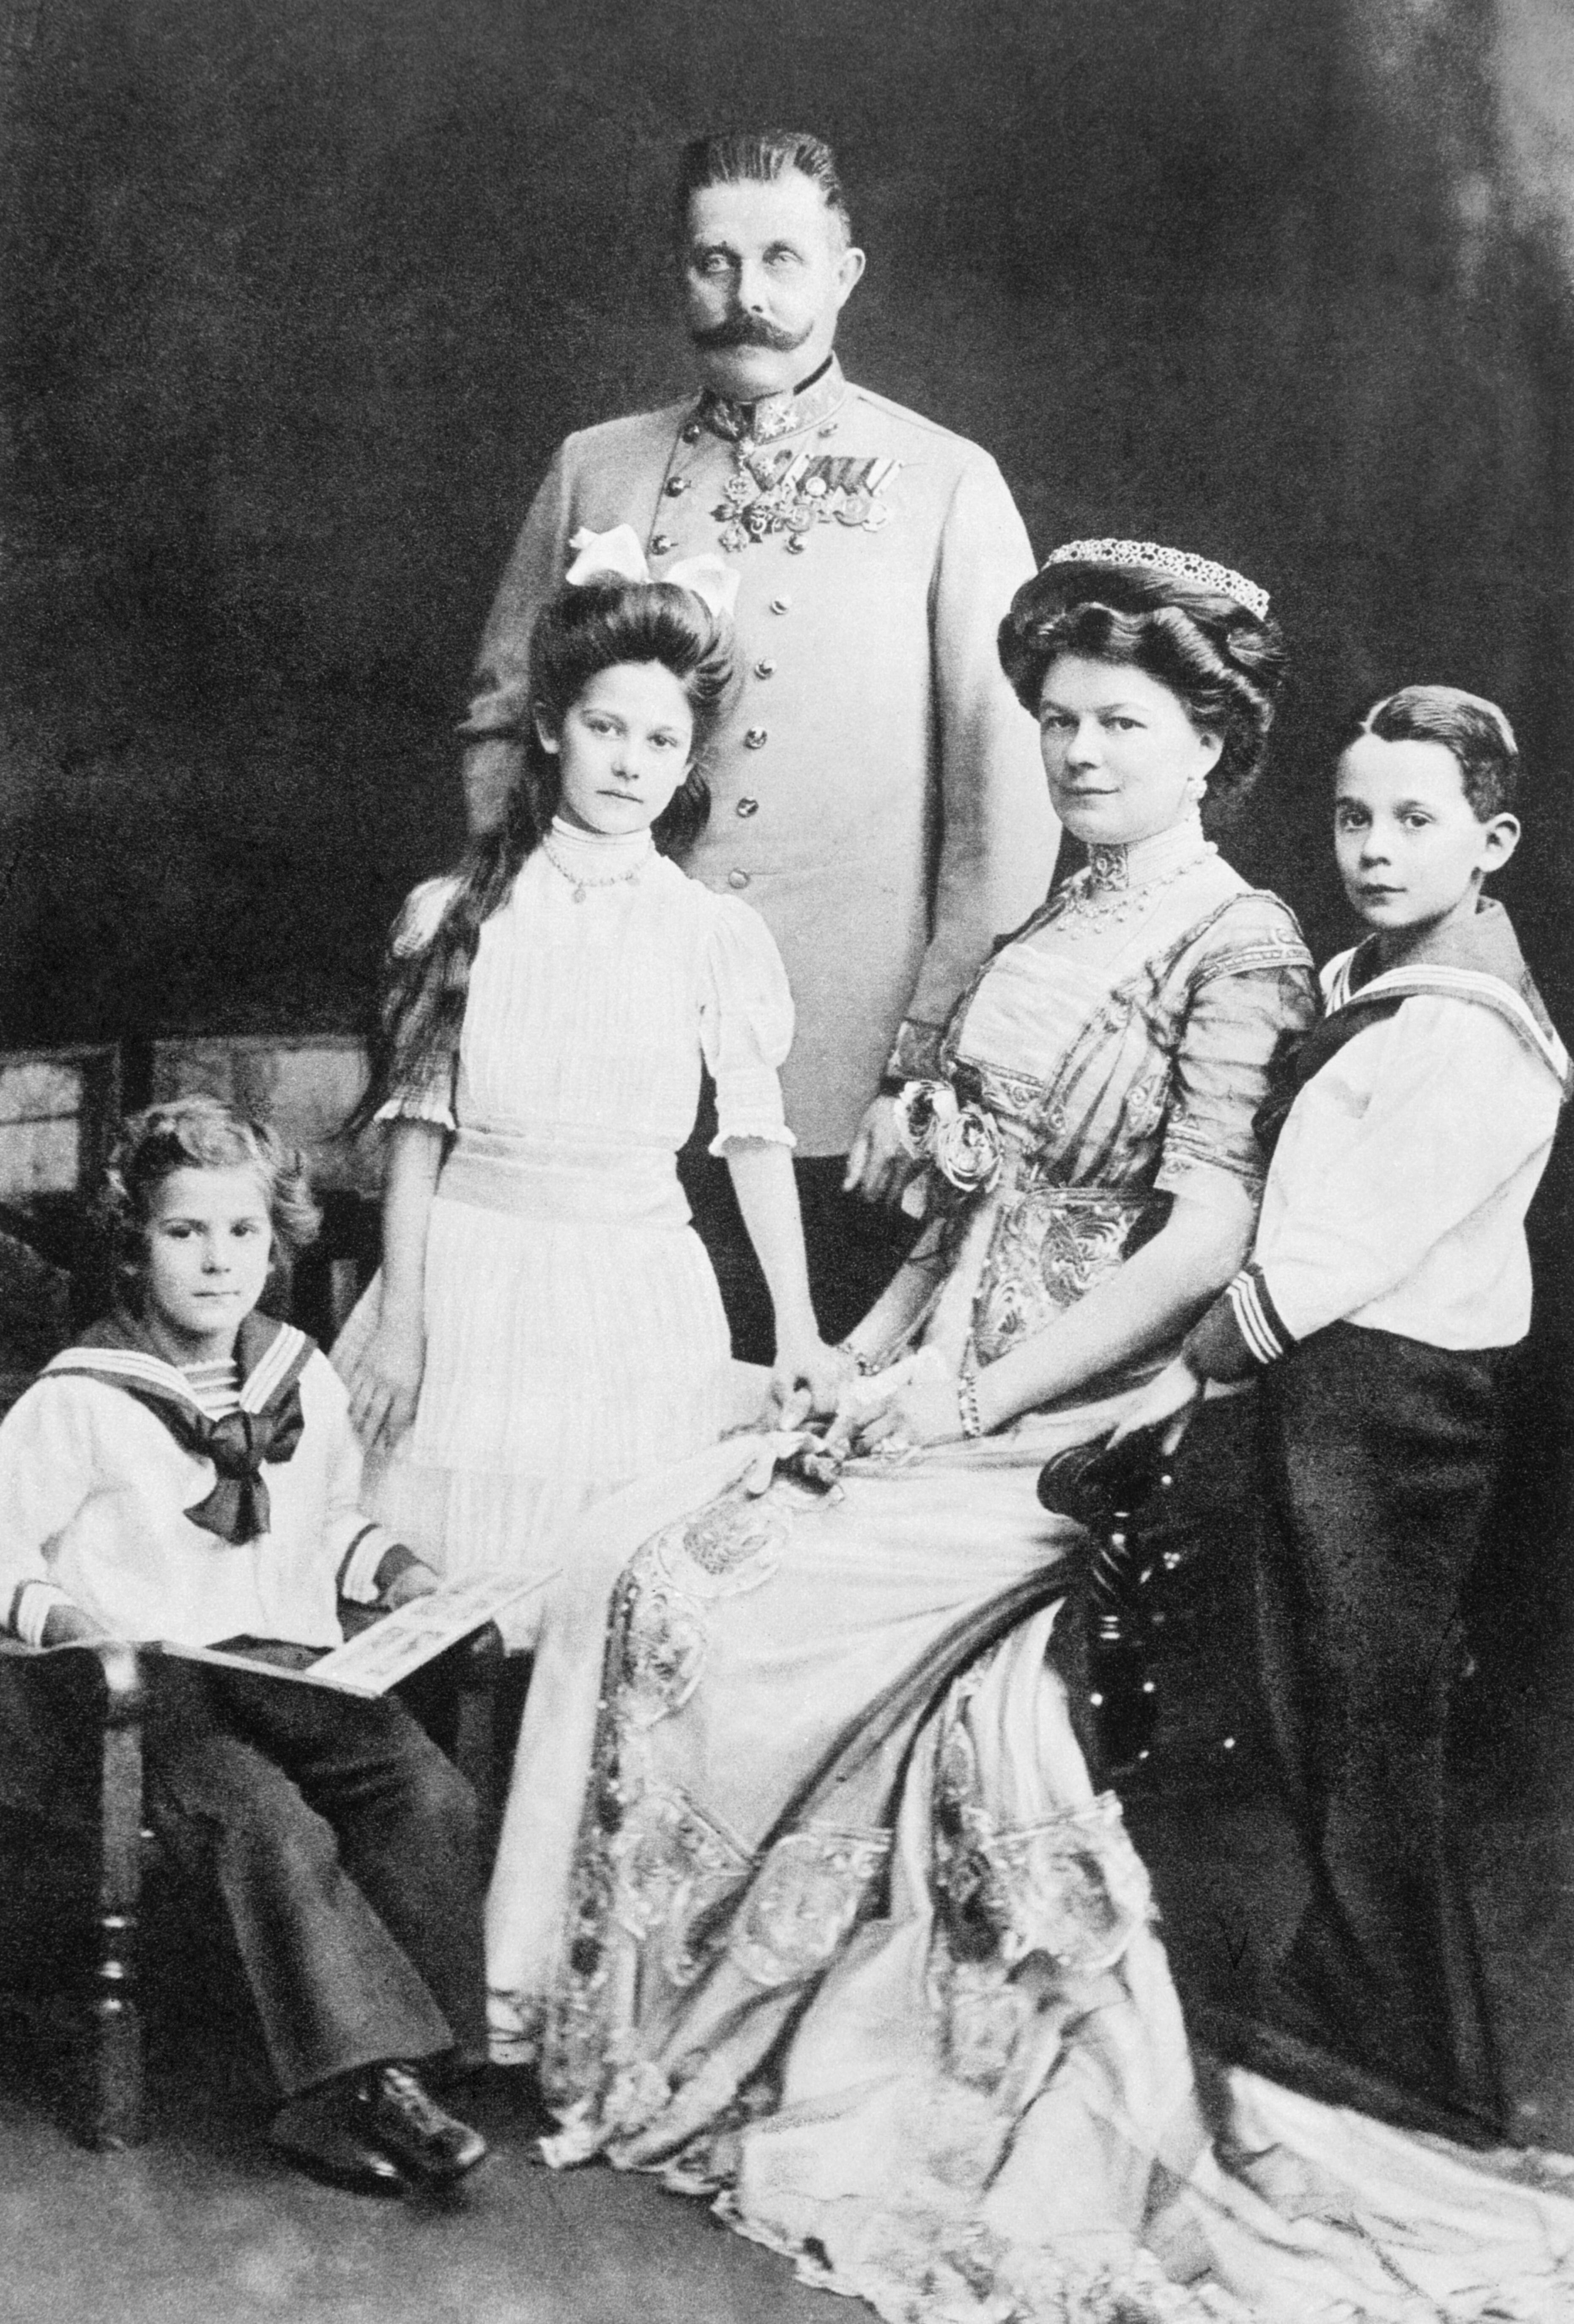 Archduke Franz Ferdinand with his wife Sophie, Duchess of Hohenberg, and their three children (from left), Prince Ernst von Hohenberg, Princess Sophie, and Maximilian, Duke of Hohenberg, in 1910.